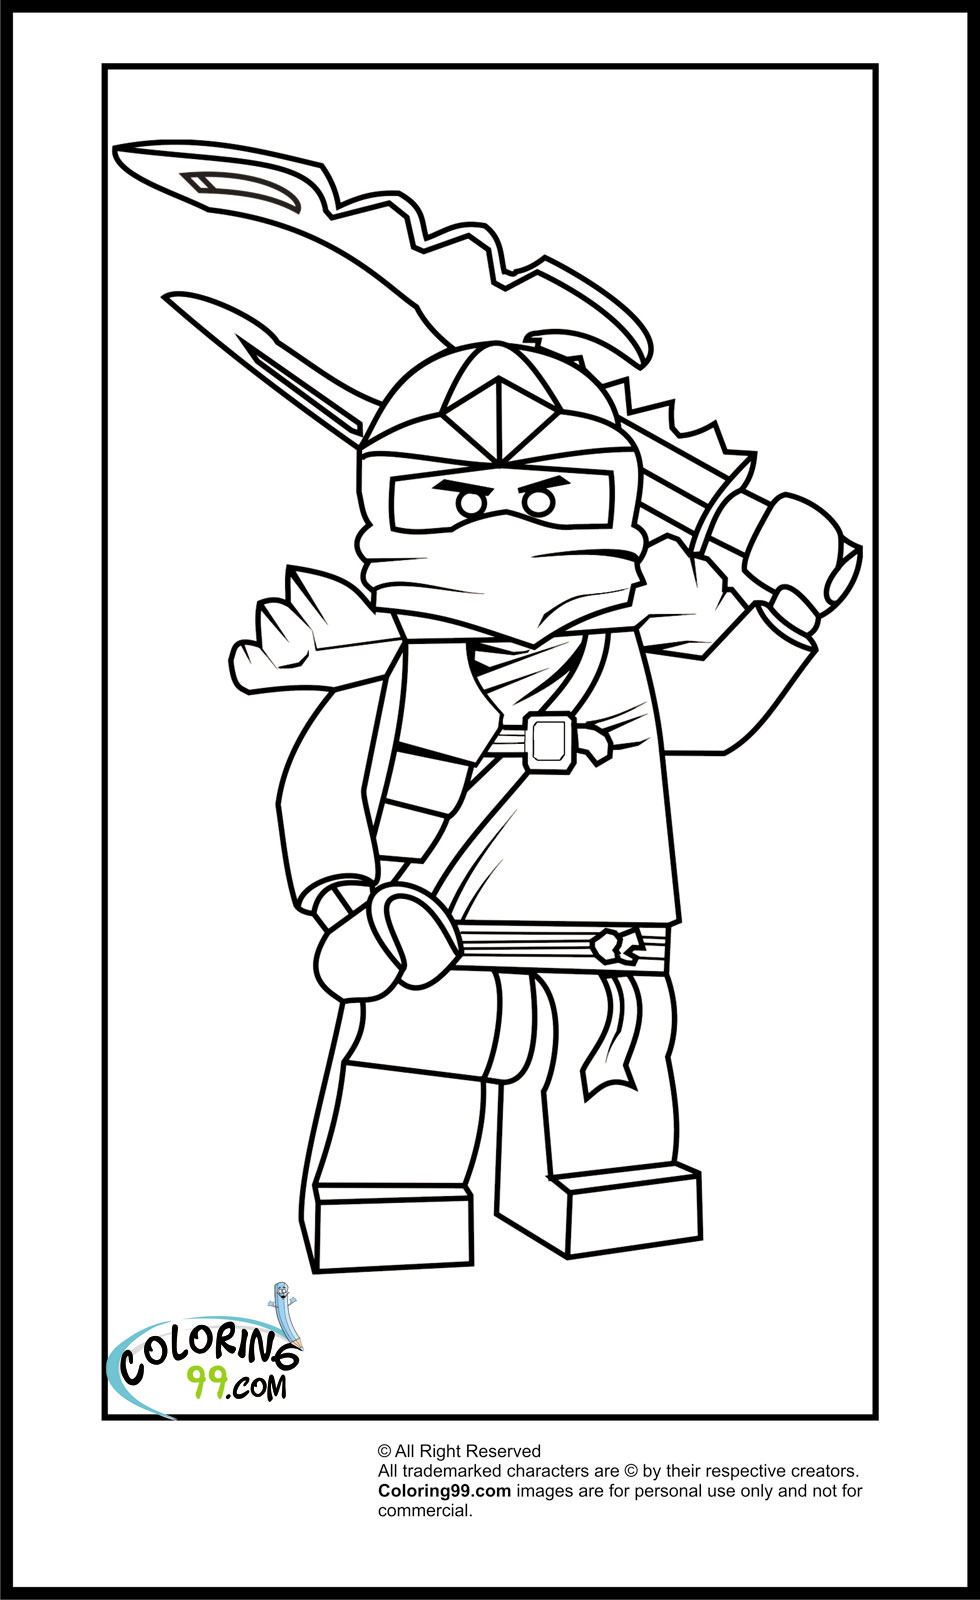 lego ninjago 2014 coloring pages - photo#22